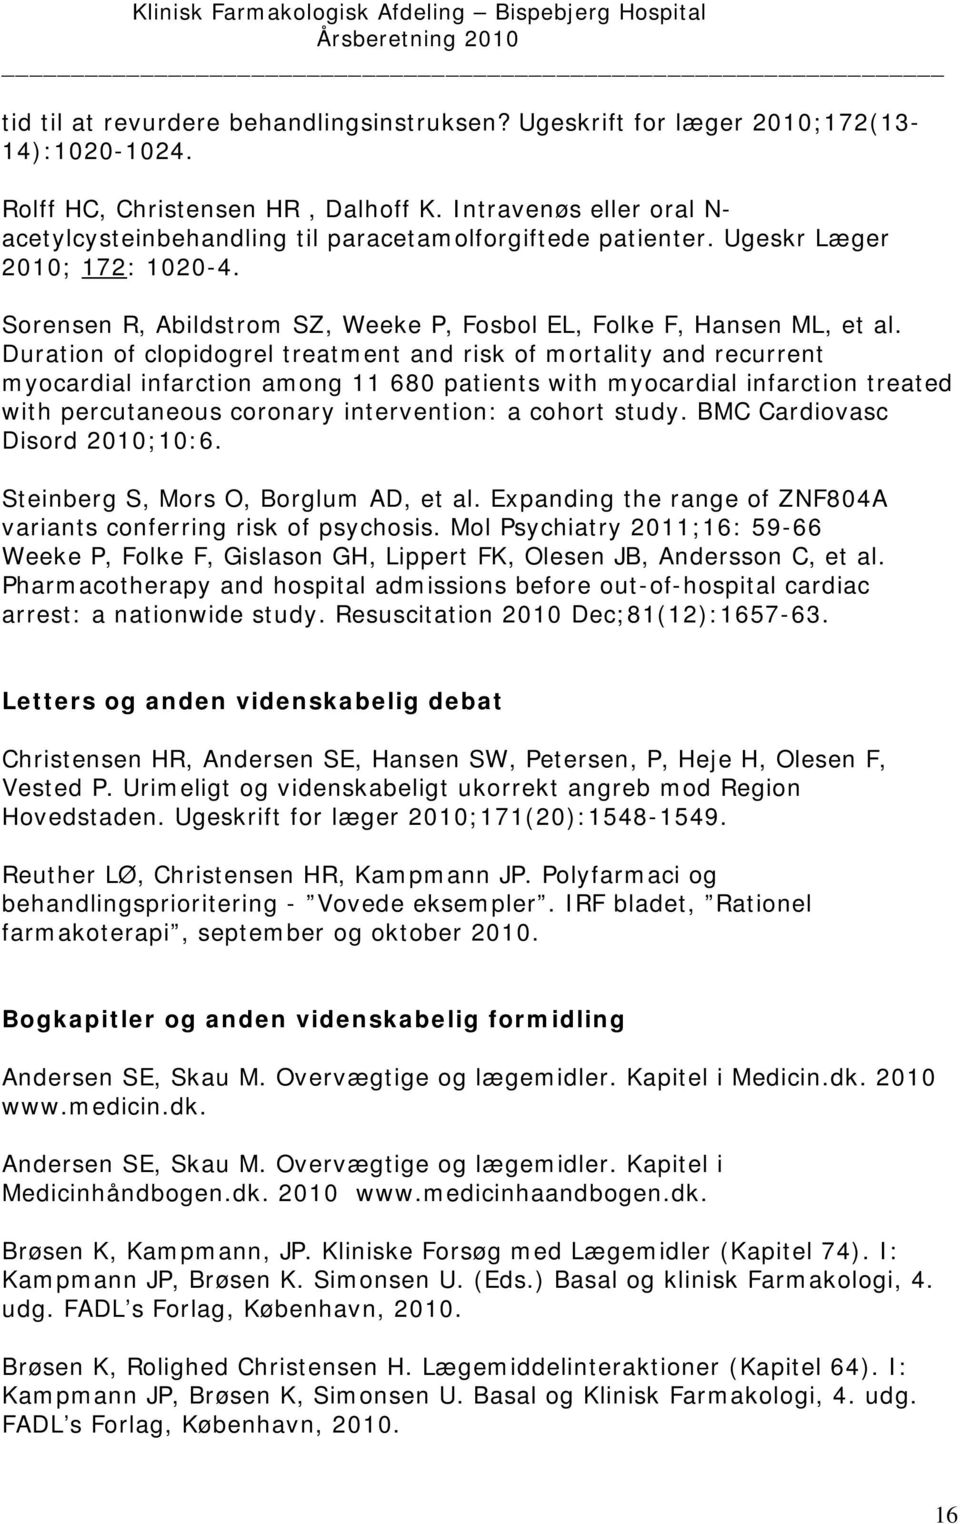 Duration of clopidogrel treatment and risk of mortality and recurrent myocardial infarction among 11 680 patients with myocardial infarction treated with percutaneous coronary intervention: a cohort